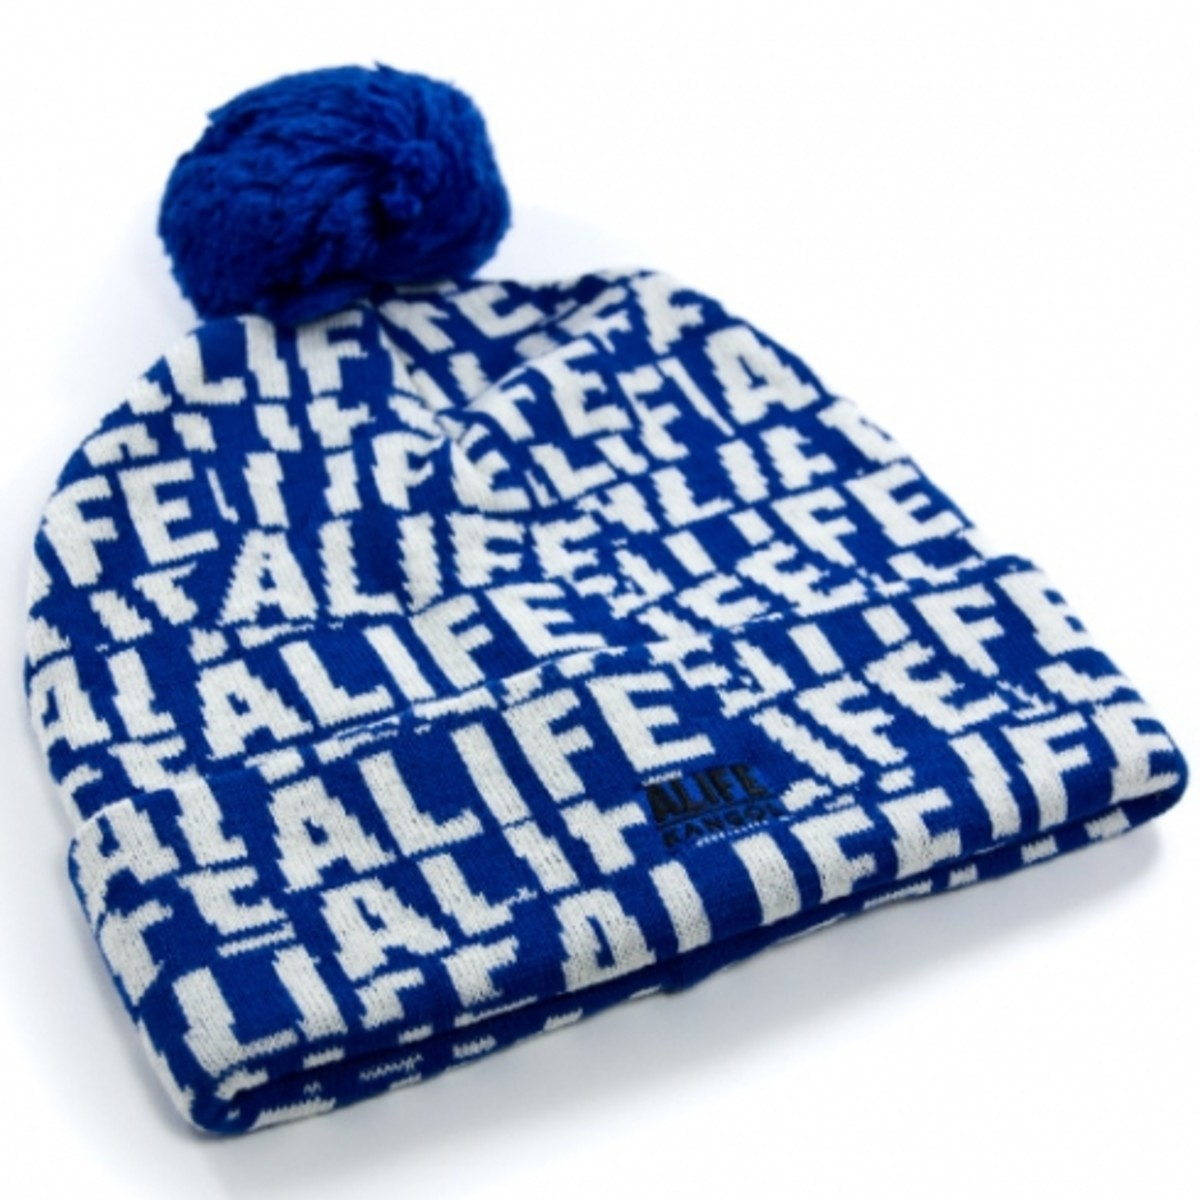 ALIFE x Kangol - Stuck Up Pom Pom - Blue